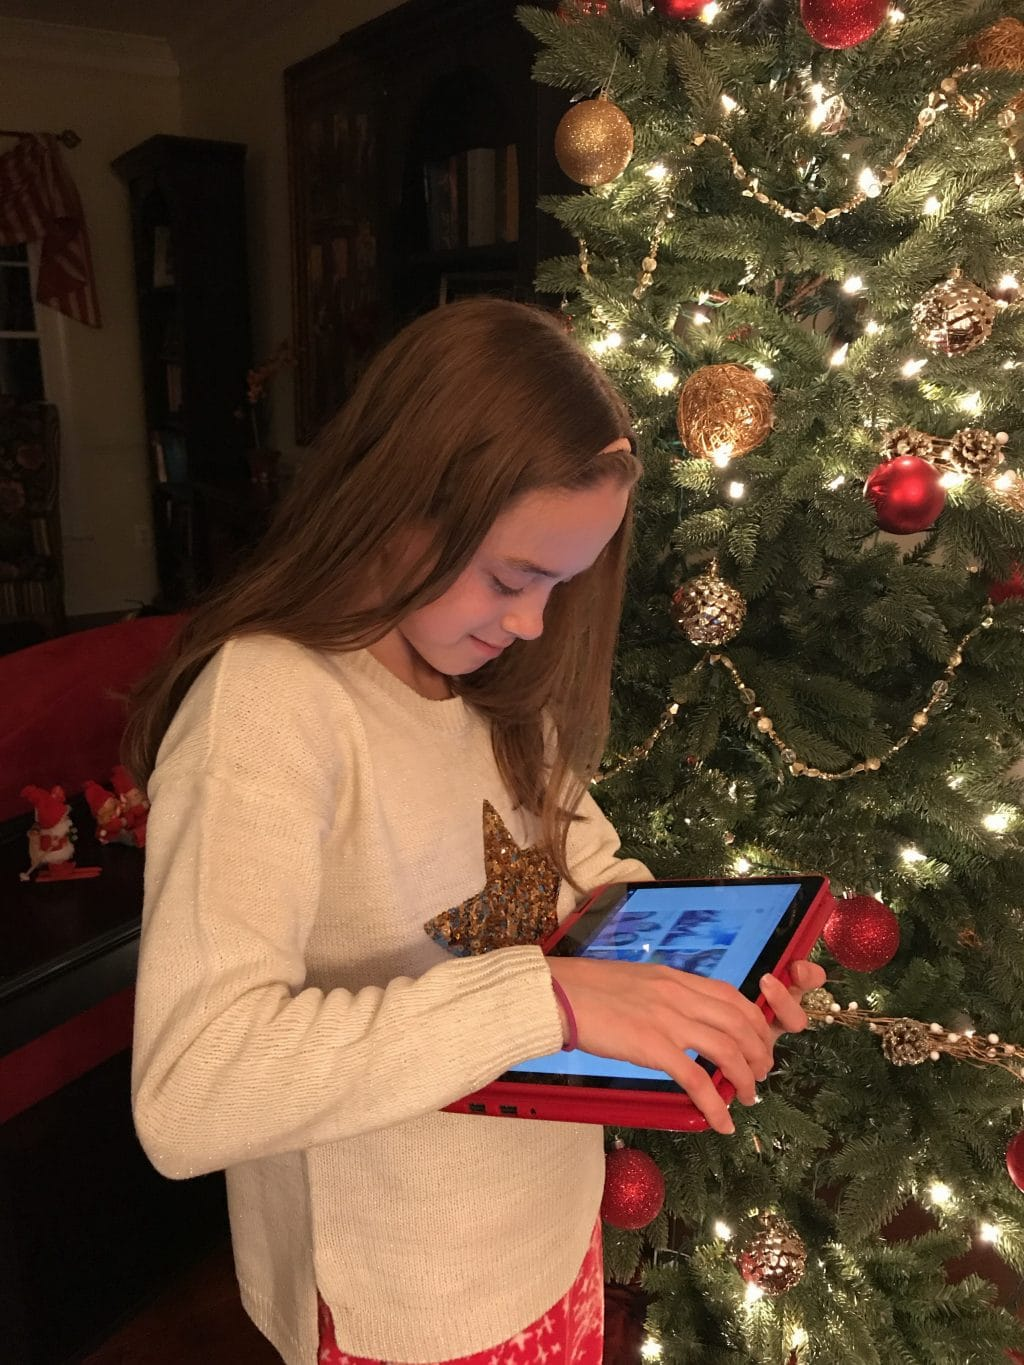 Affordable Tech Gift Idea for the Kids